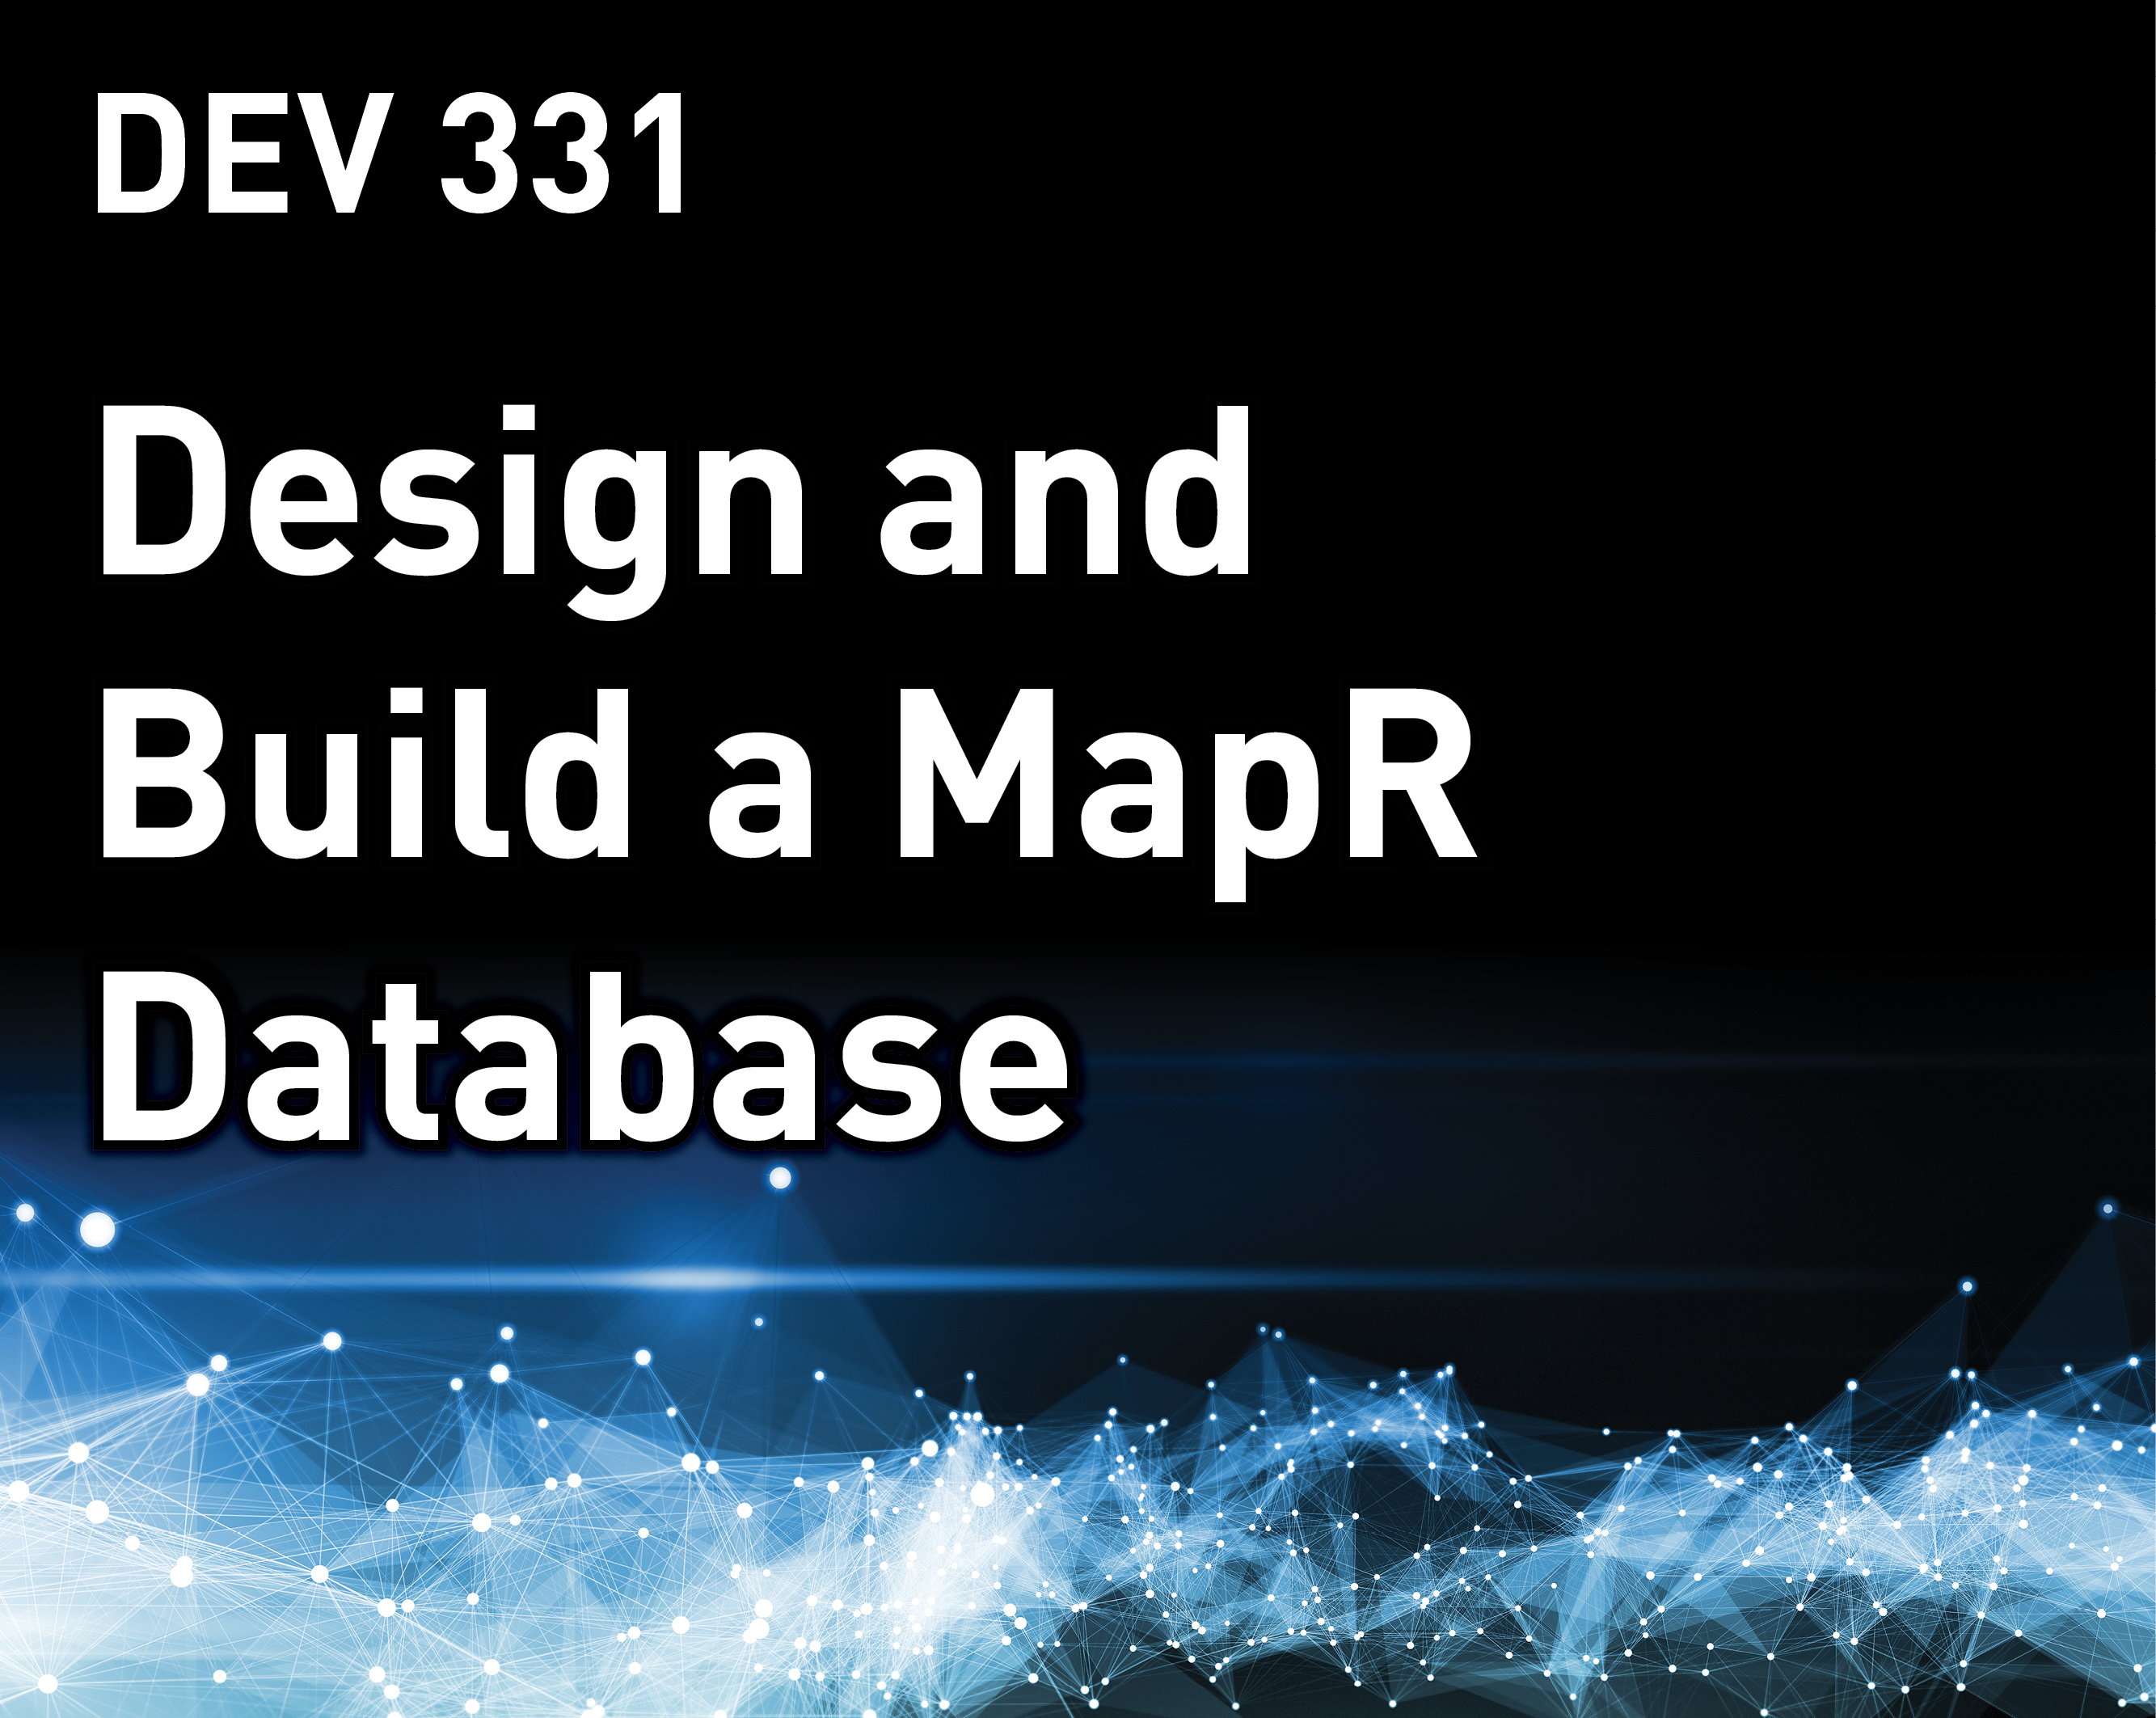 Design and Build a MapR Database